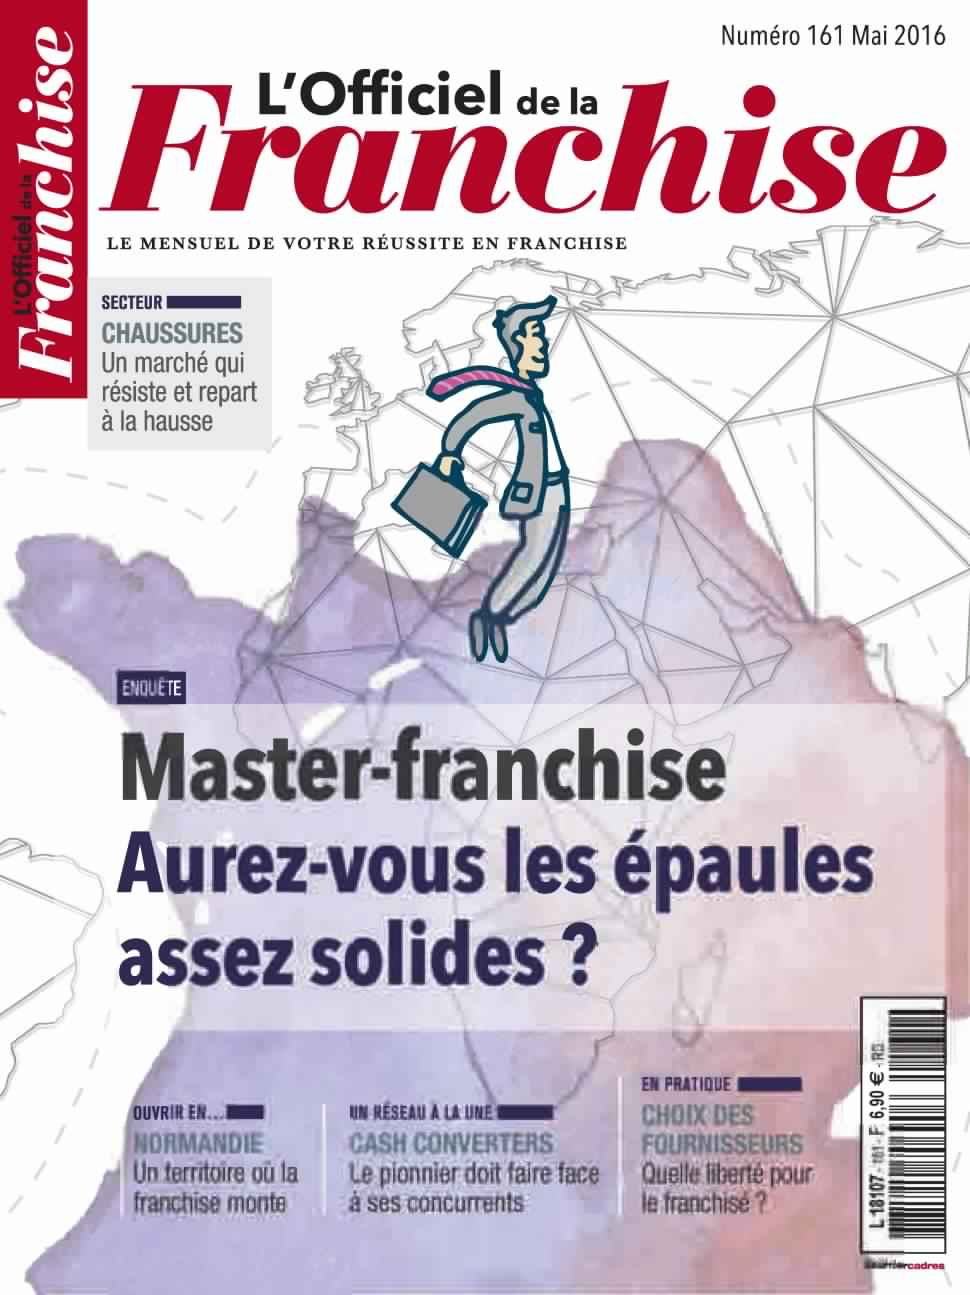 L'Officiel de la Franchise 161 - Mai 2016